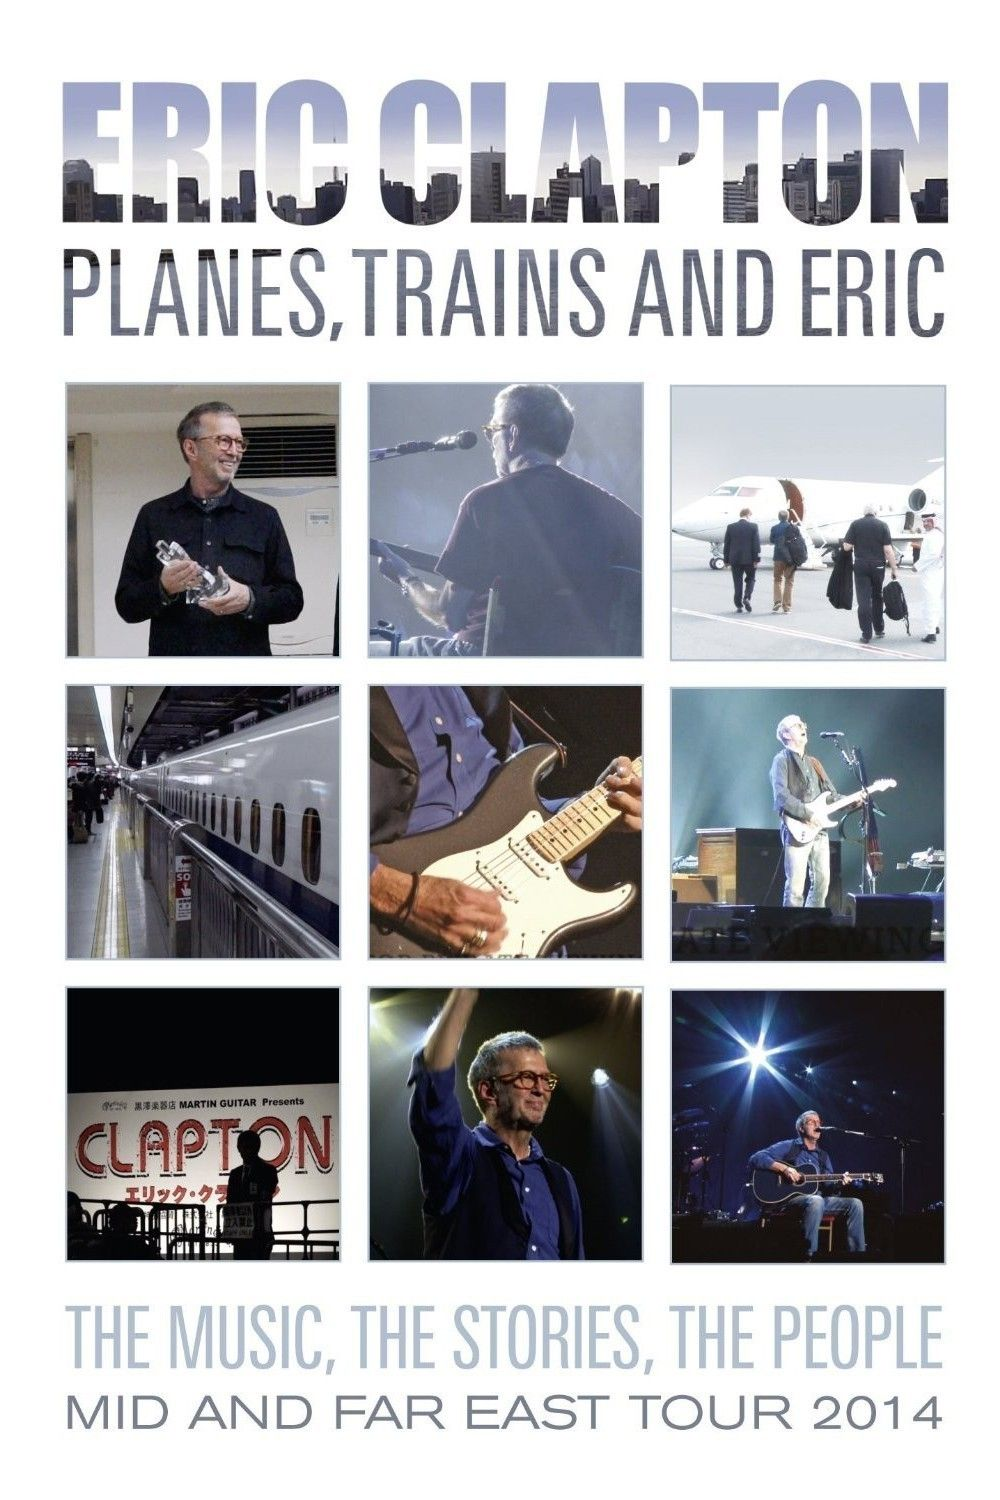 Eric Clapton - Planes Trains and Eric Movie Poster http://ift.tt/2DvxqPH